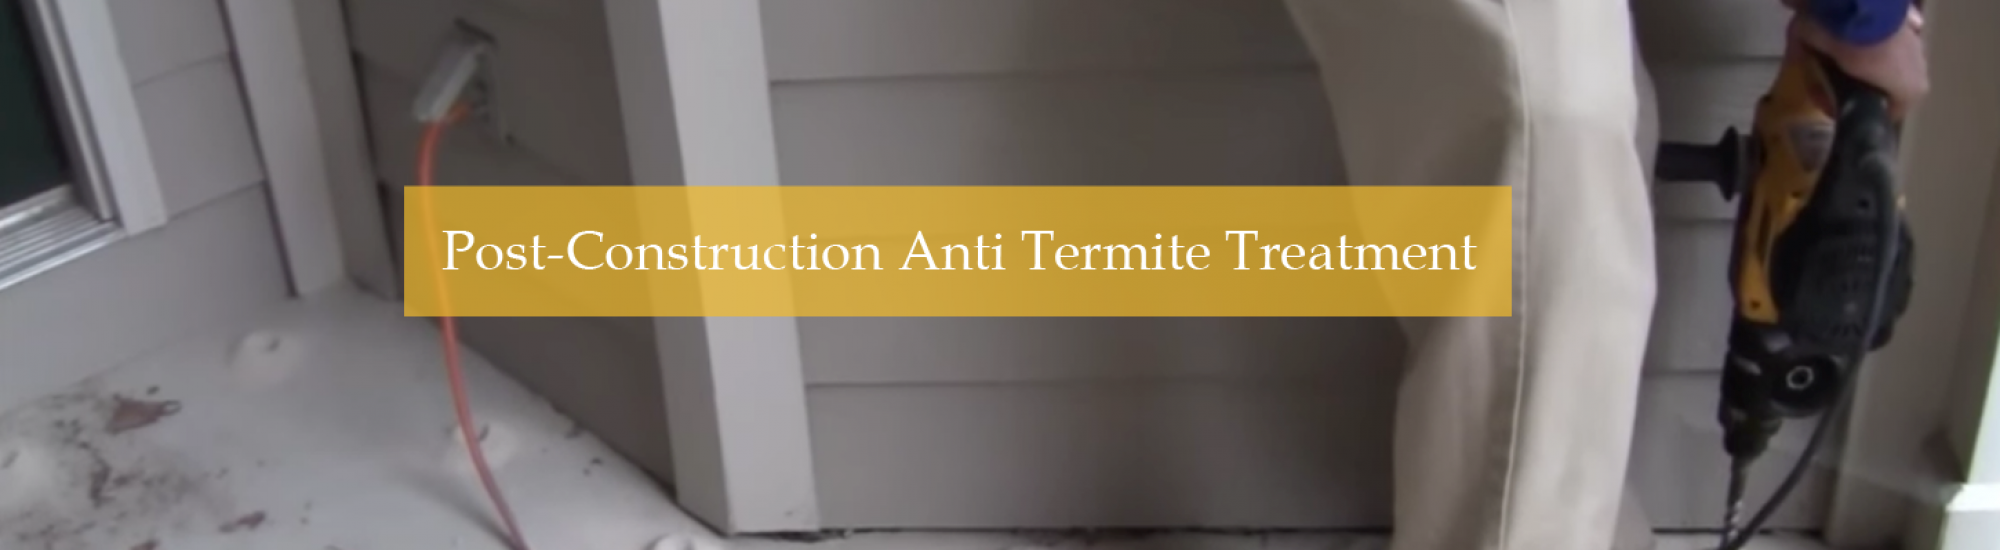 Post-Construction Anti Termite Treatment in Delhi